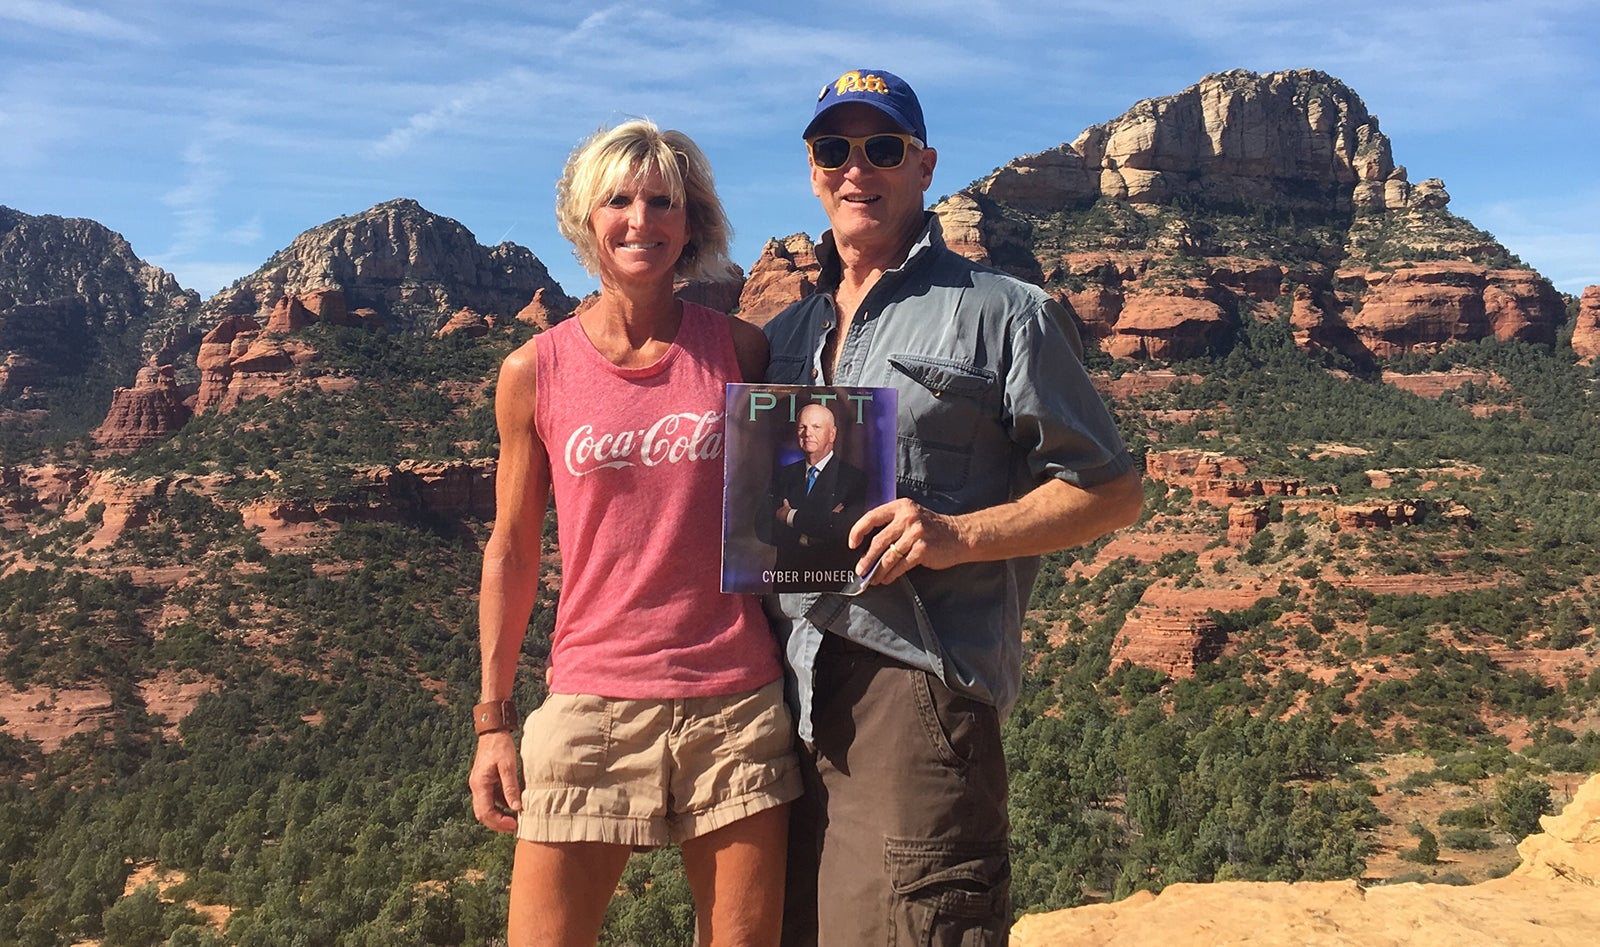 blond-haired woman in shorts and Coca-Cola tank top and man in short-sleeves and Pitt script hat hold Fall 2019 issue of Pitt Magazine in front of rocky landscape